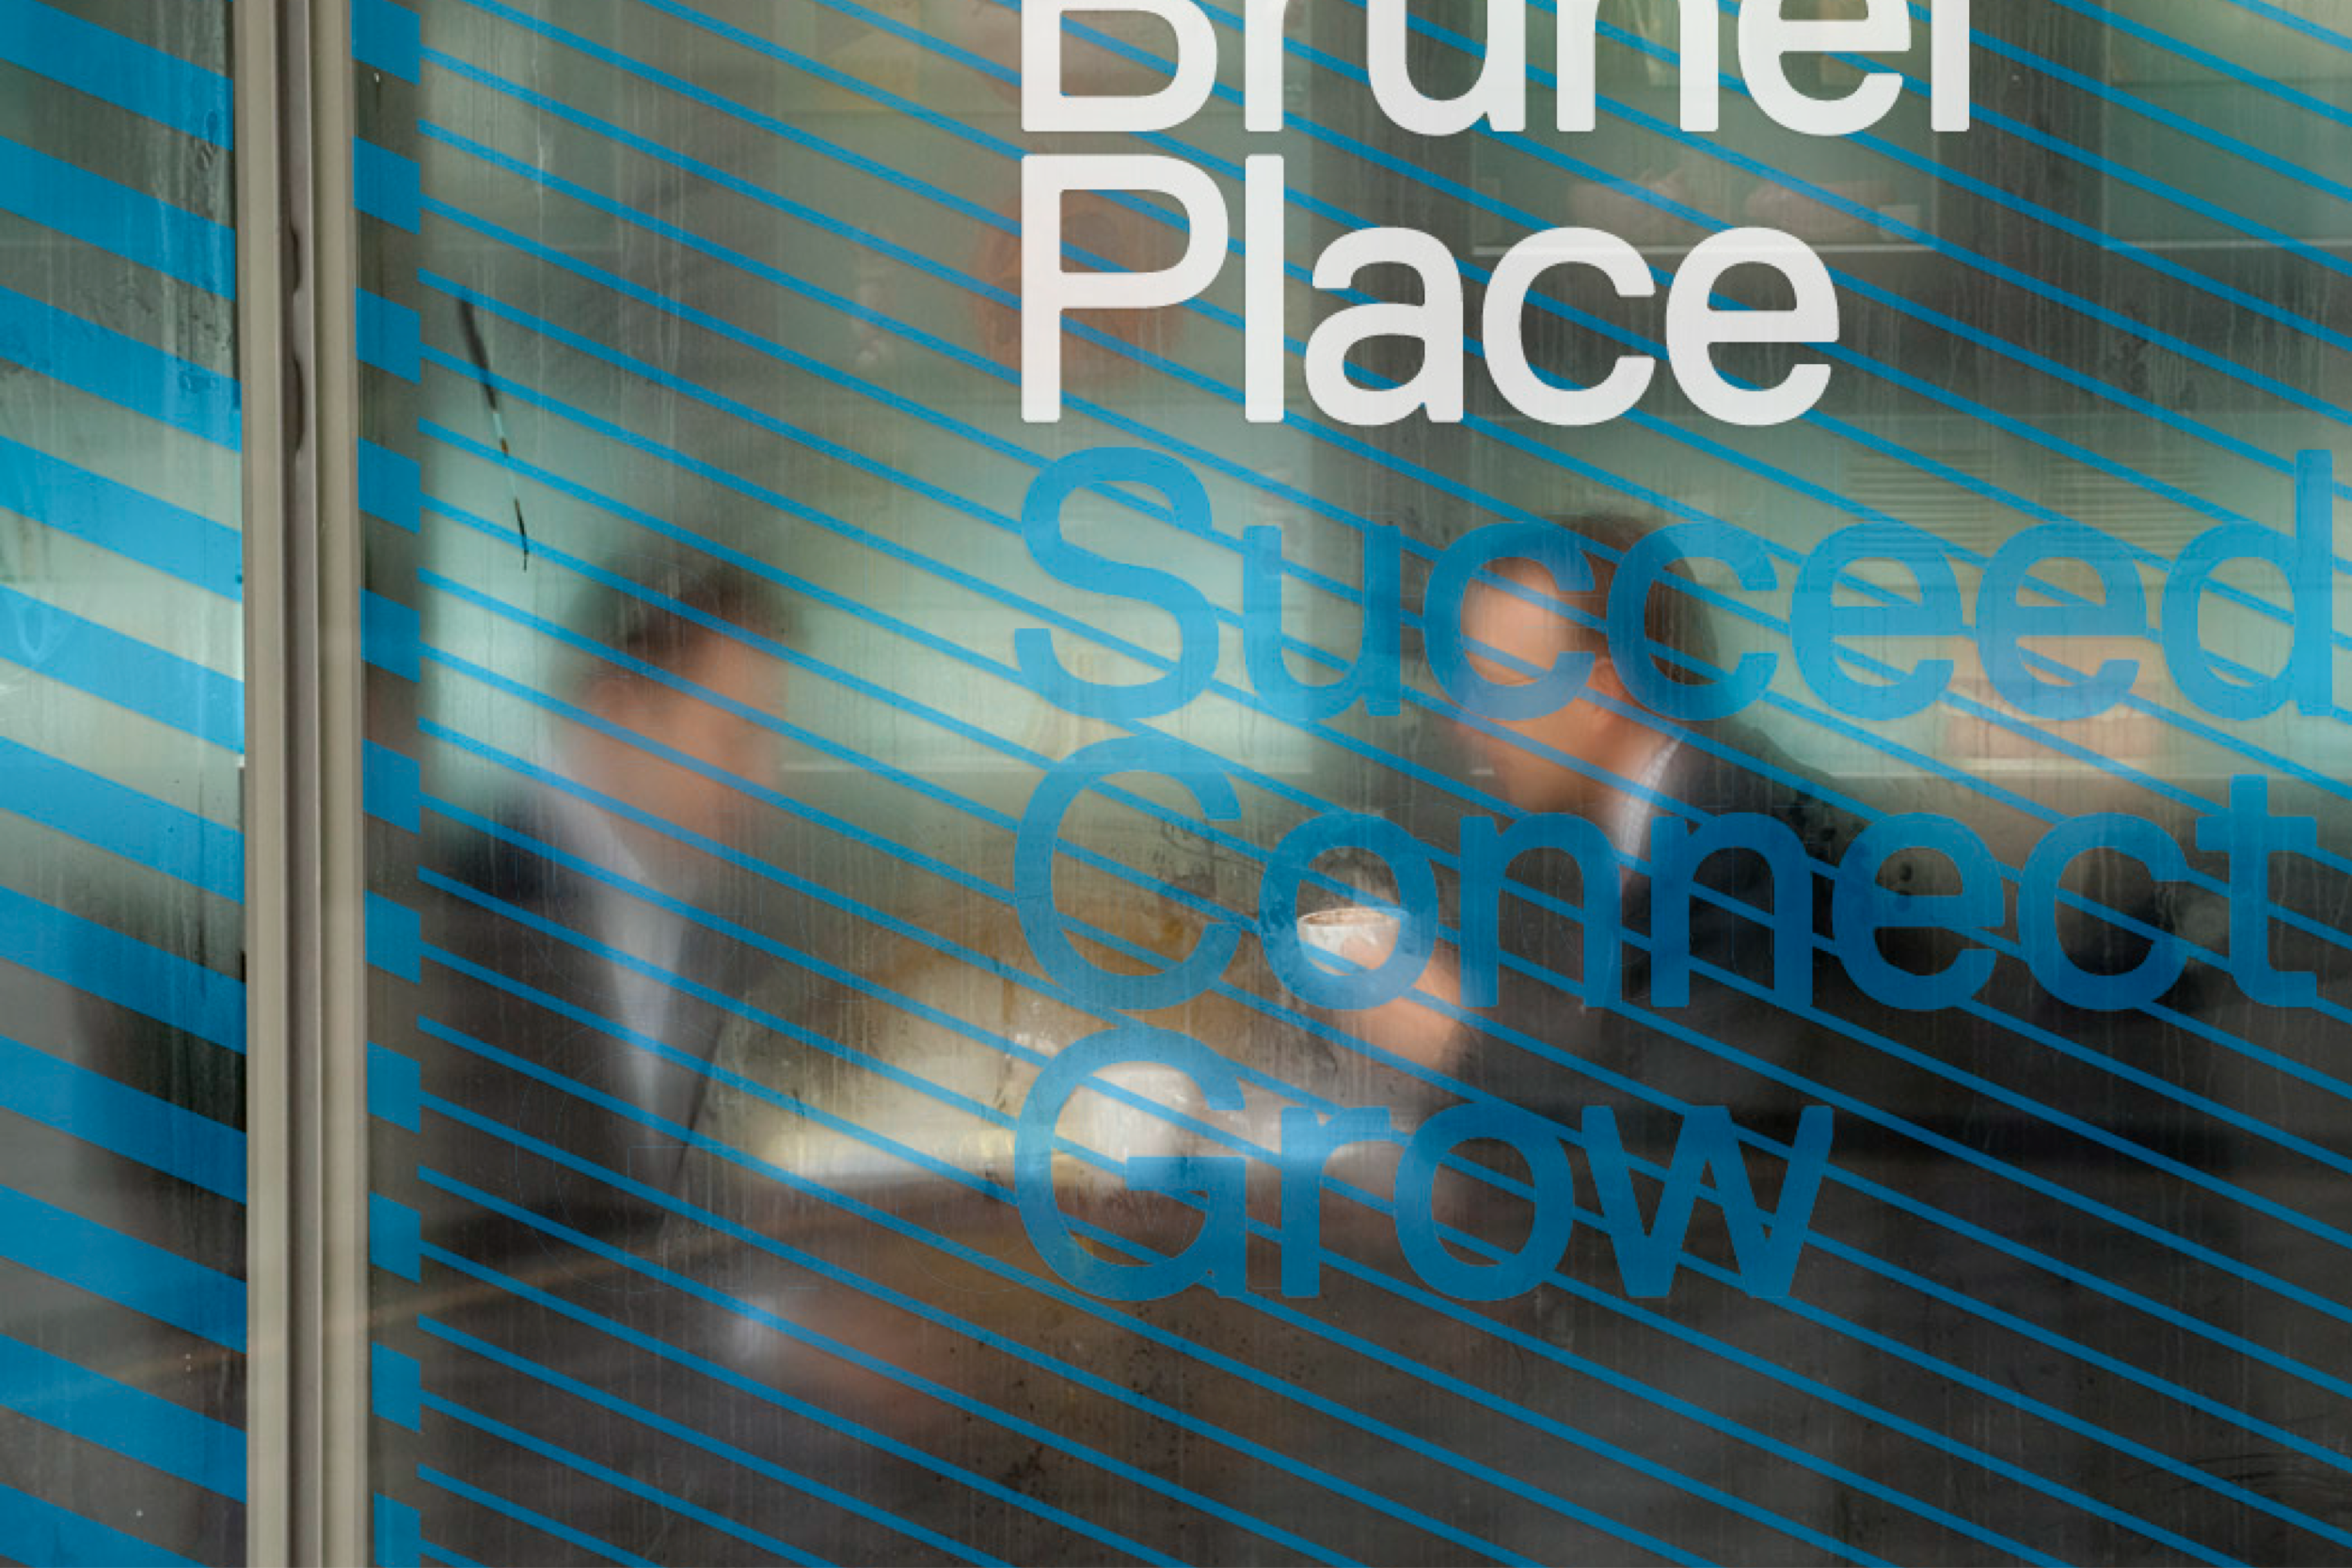 Brunel_Place_identity12.png